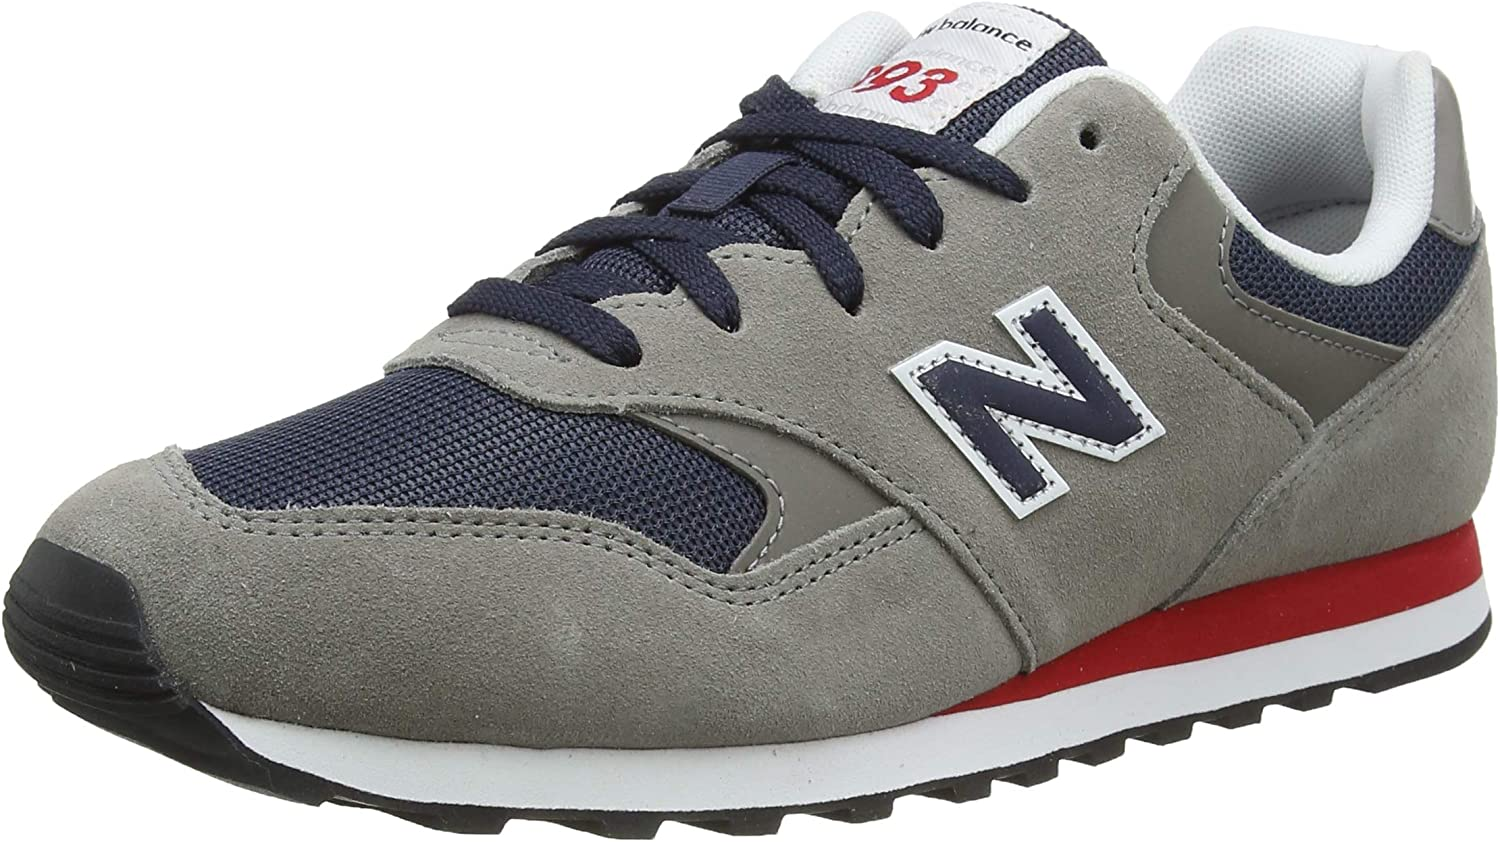 New Balance 393 Navy/Marblehead Suede Adult Trainers Shoes